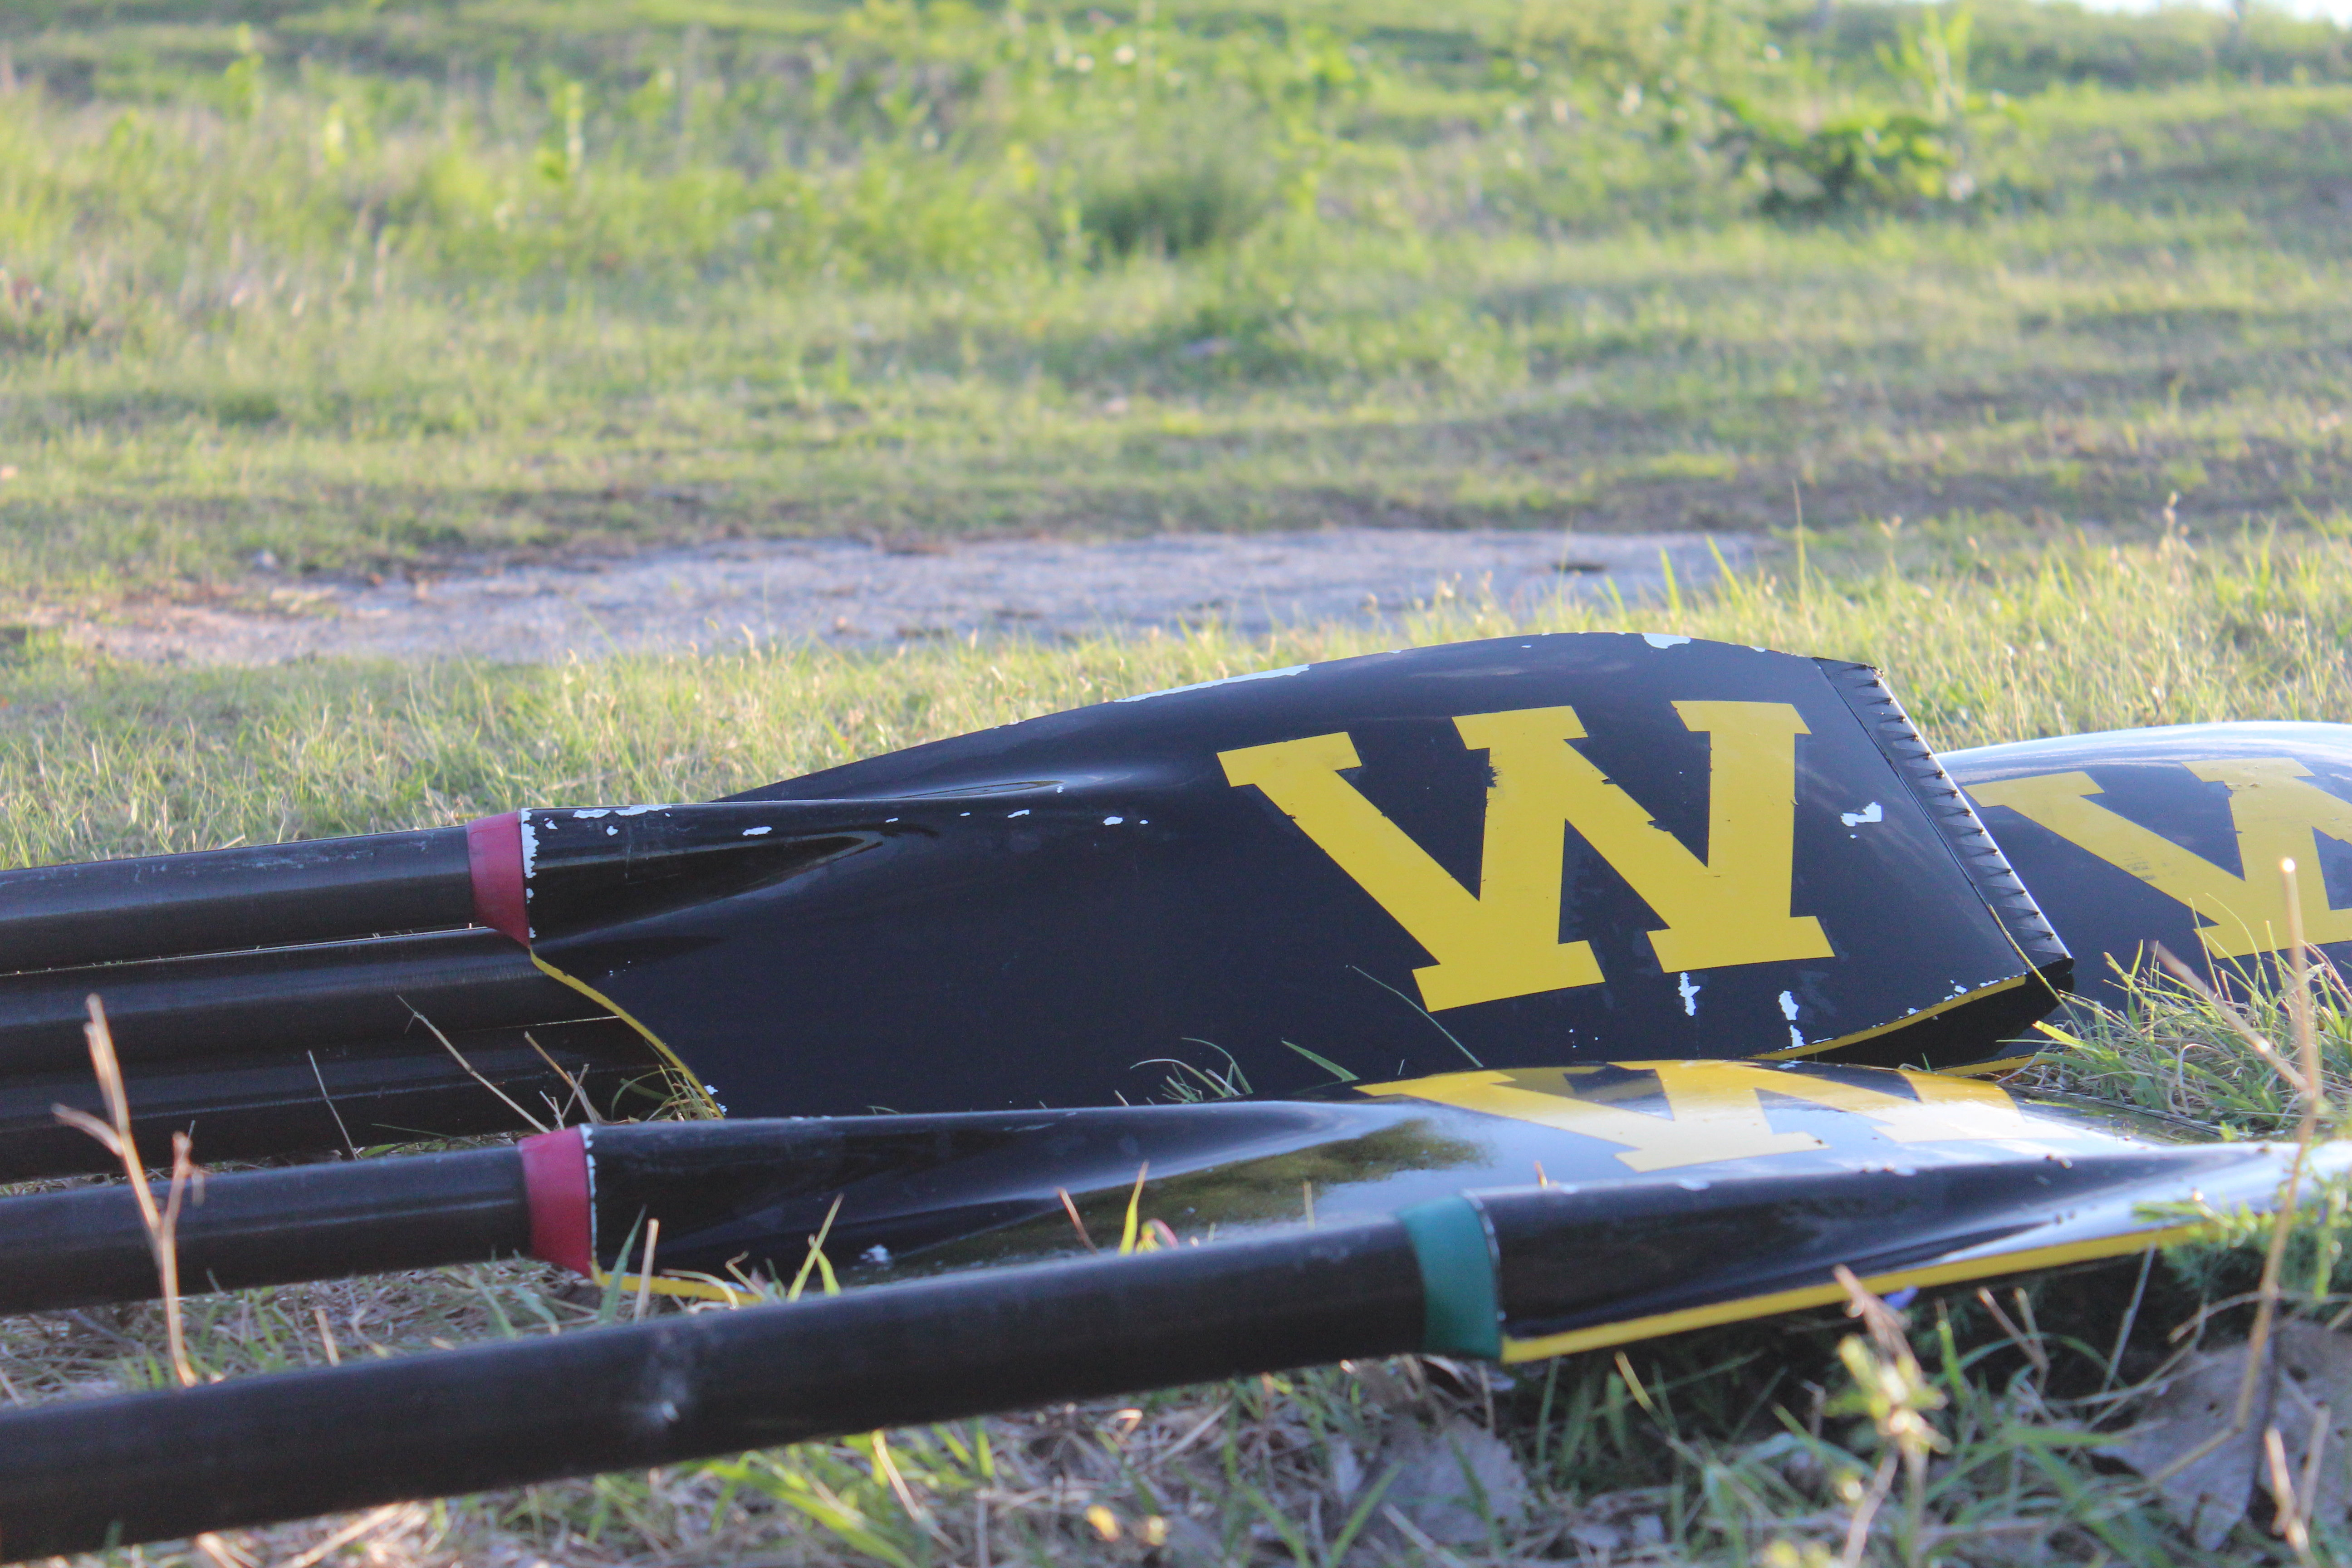 closeup of oars on grassy ground. The yellow W is prominent on the black blade.